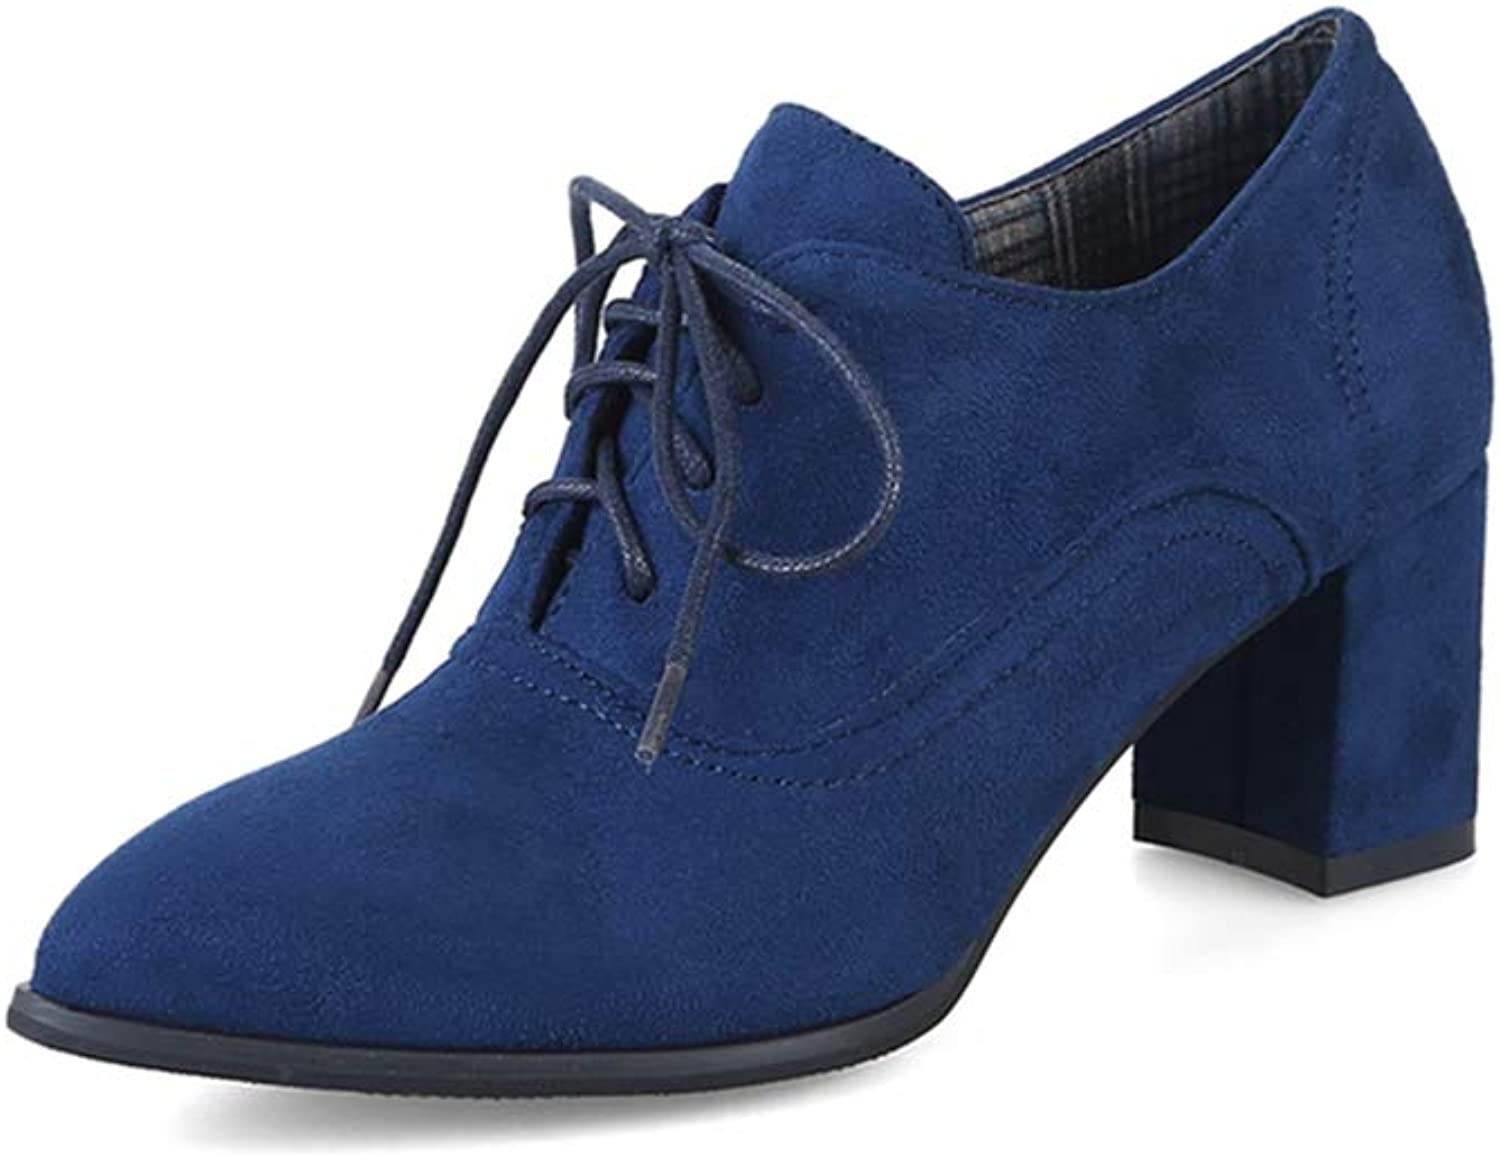 GIY Women's Suede Lace Up Oxford Pumps Pointed Toe Platform Chunky Mid Heel Casual Dress Oxfords shoes